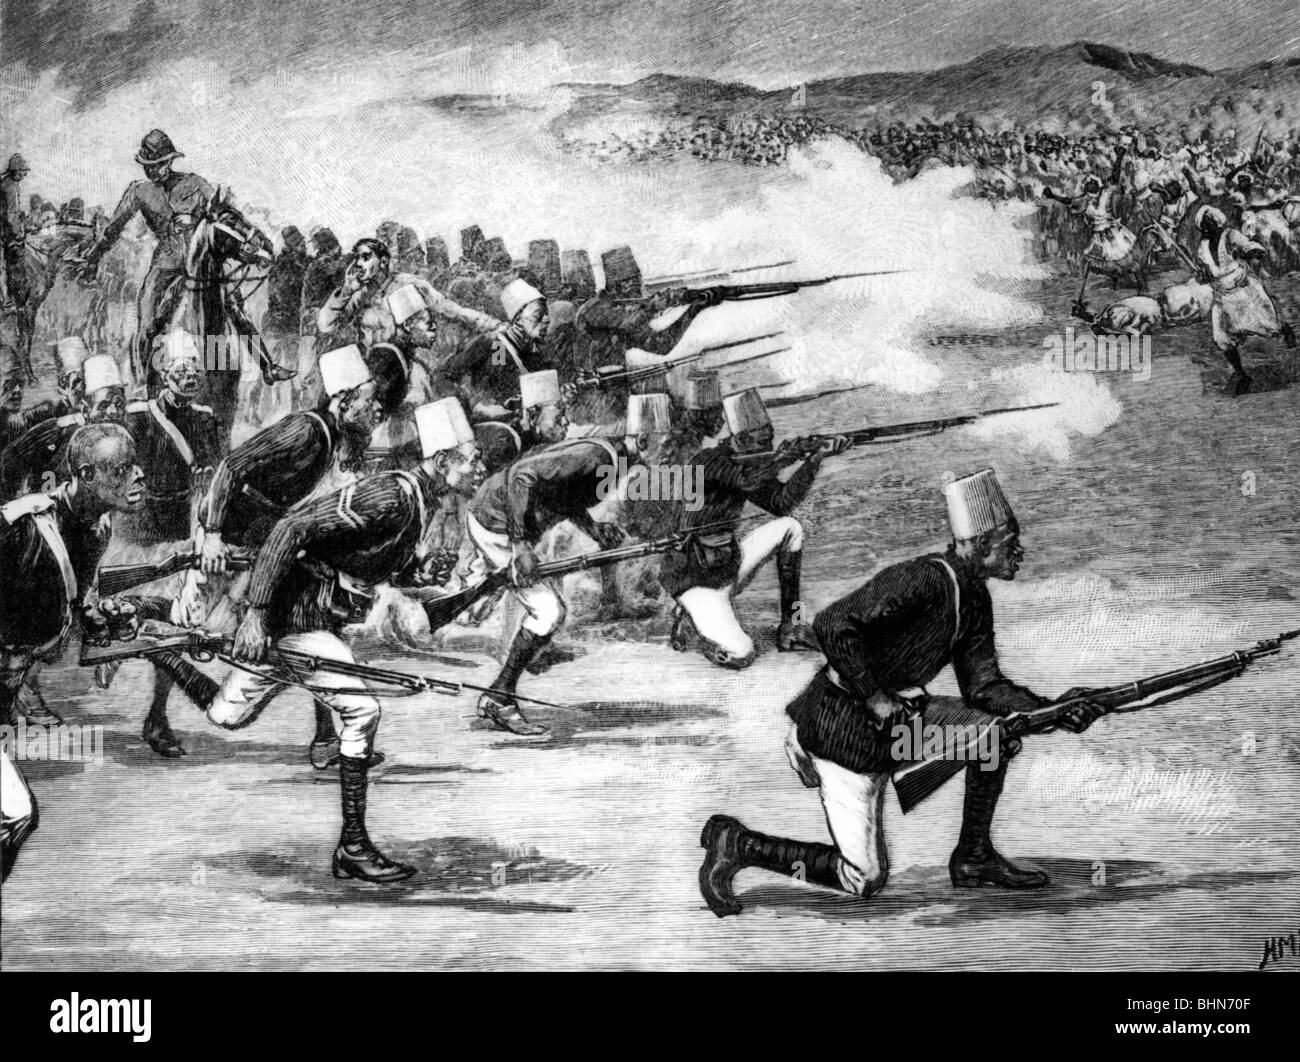 geography / travel, Africa, Sudan, revolt of Mahdi, Omdurman battle, 2.9.1898, Additional-Rights-Clearances-NA - Stock Image